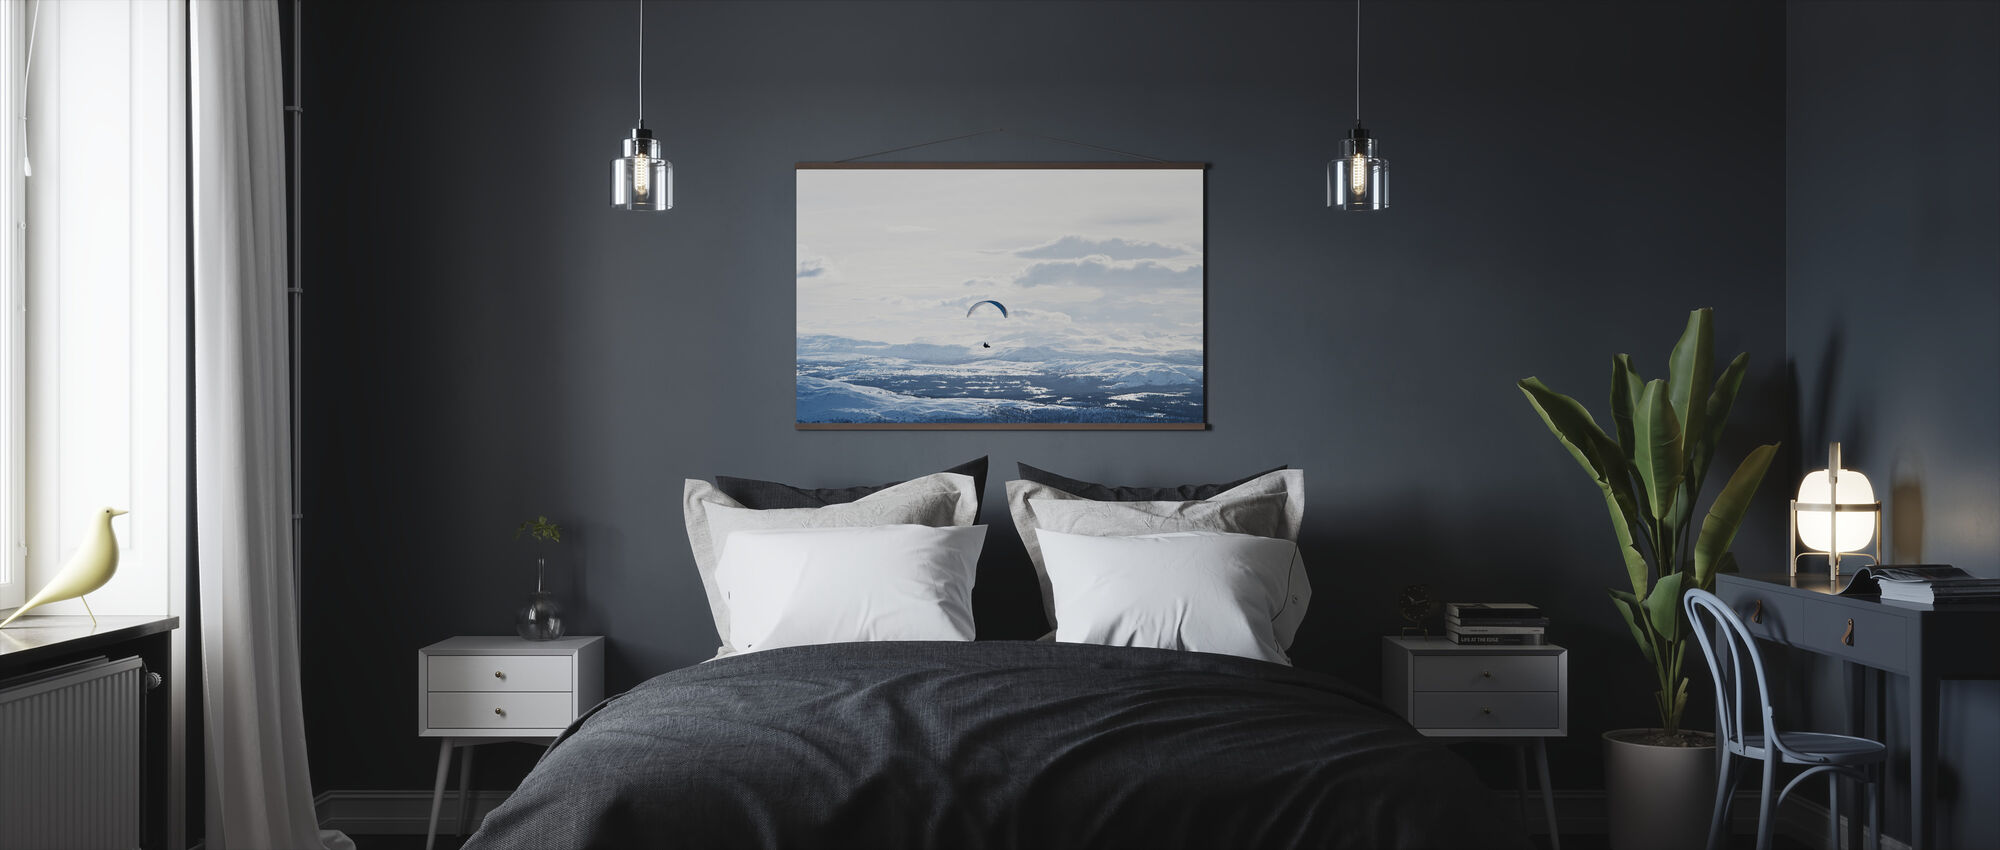 Parachuting in Åre, Sweden - Poster - Bedroom